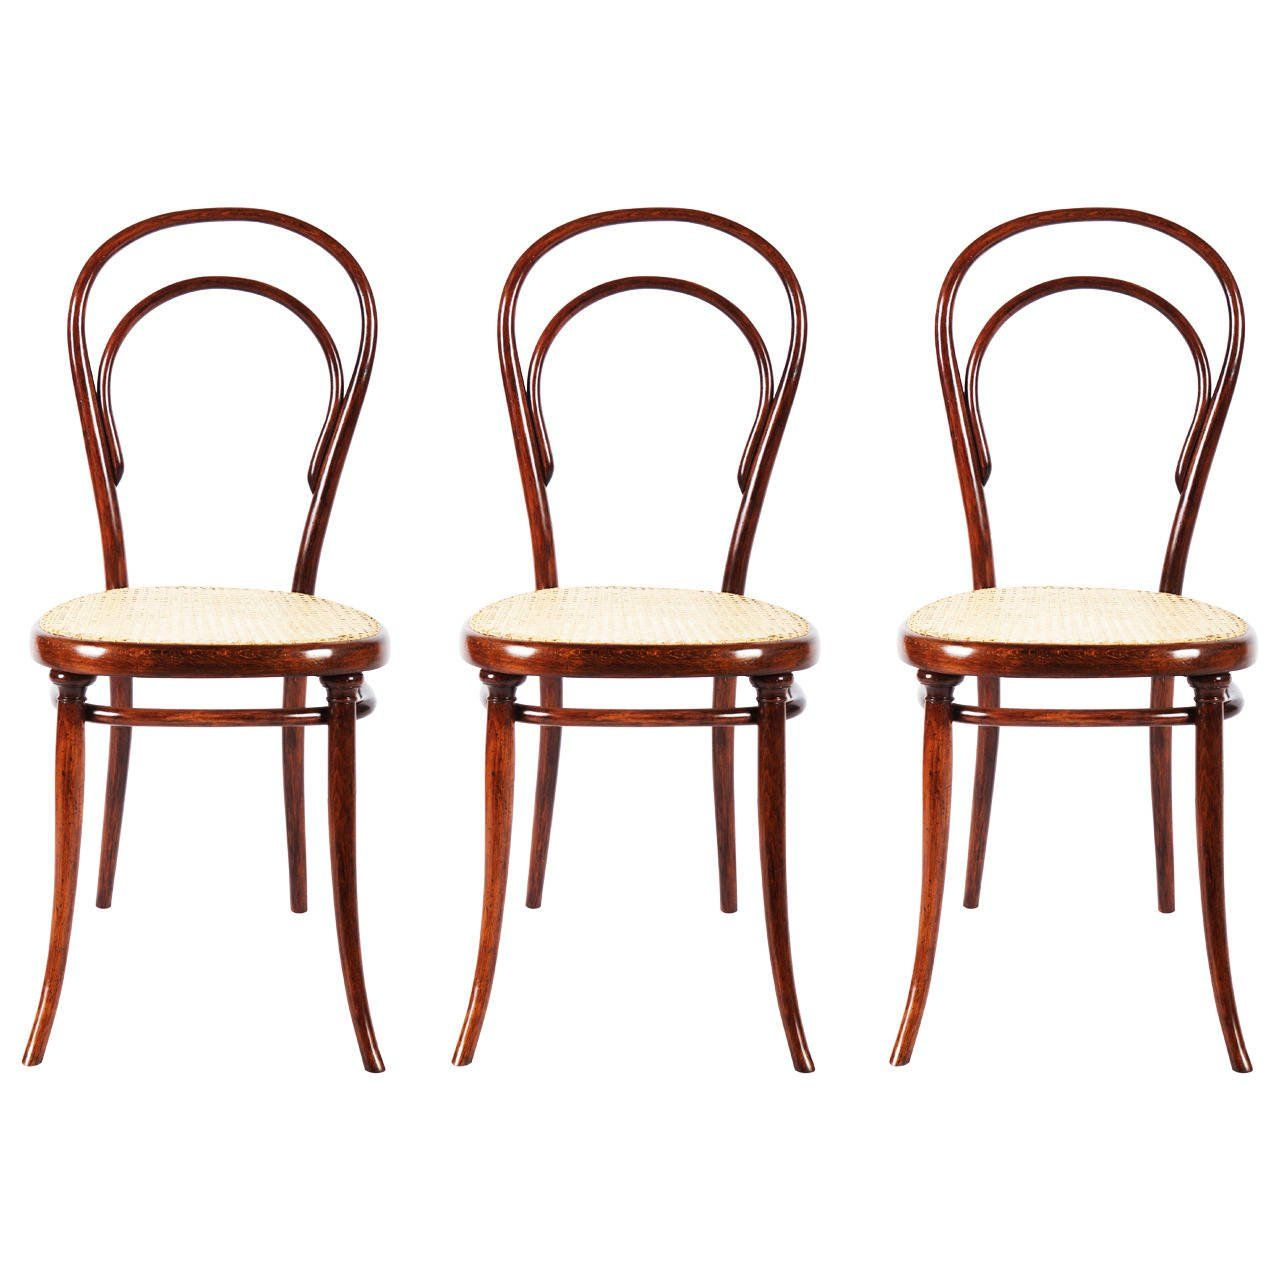 Bentwood Side Chair No. 14 with First Paper Label